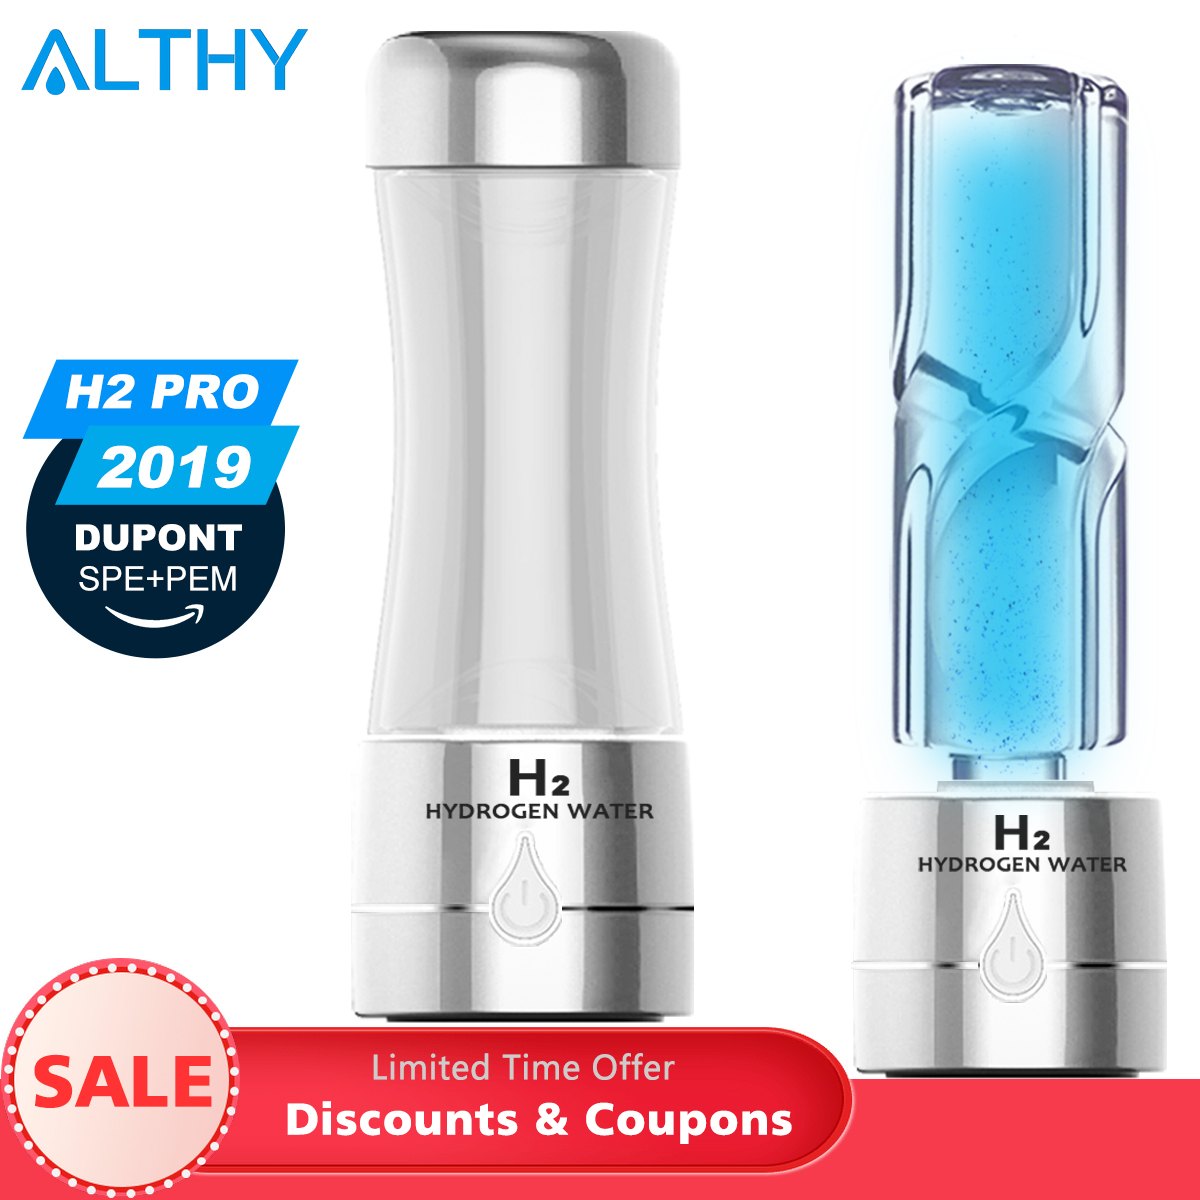 ALTHY H2 PRO Hydrogen Water Generator Bottle DuPont SPE PEM Dual Chamber Technology Maker Lonizer Electrolysis Rich Max 3000ppb